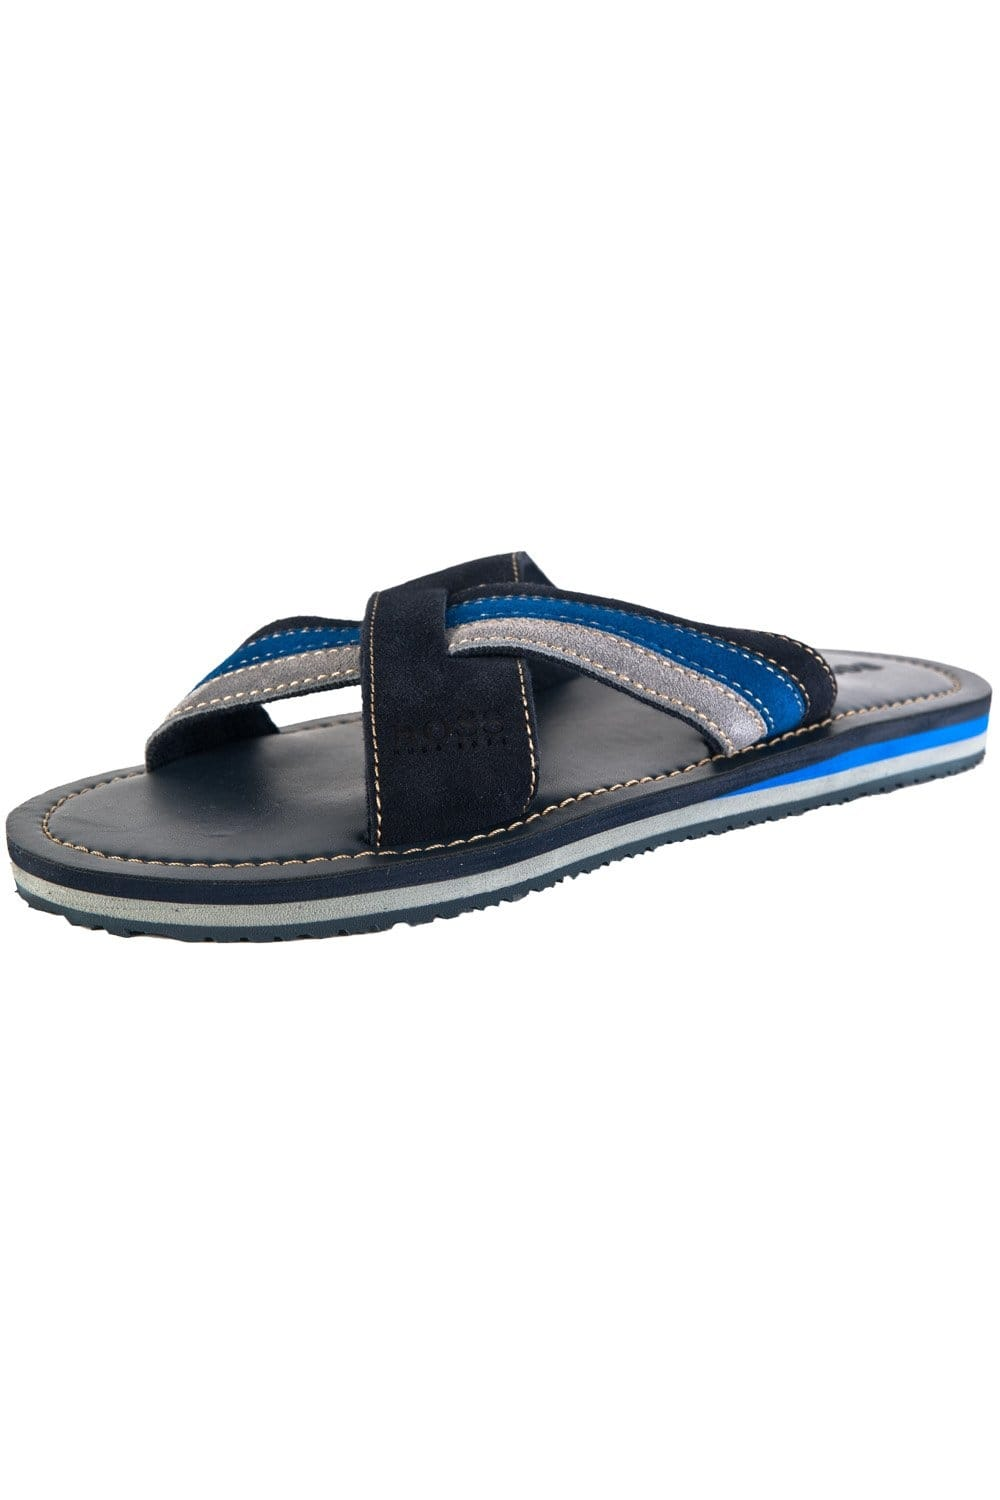 1adb2e986012f BOSS GREEN HUGO BOSS ORANGE Suede Cross-over Flip-flops in Navy Blue SIETTO  50260593